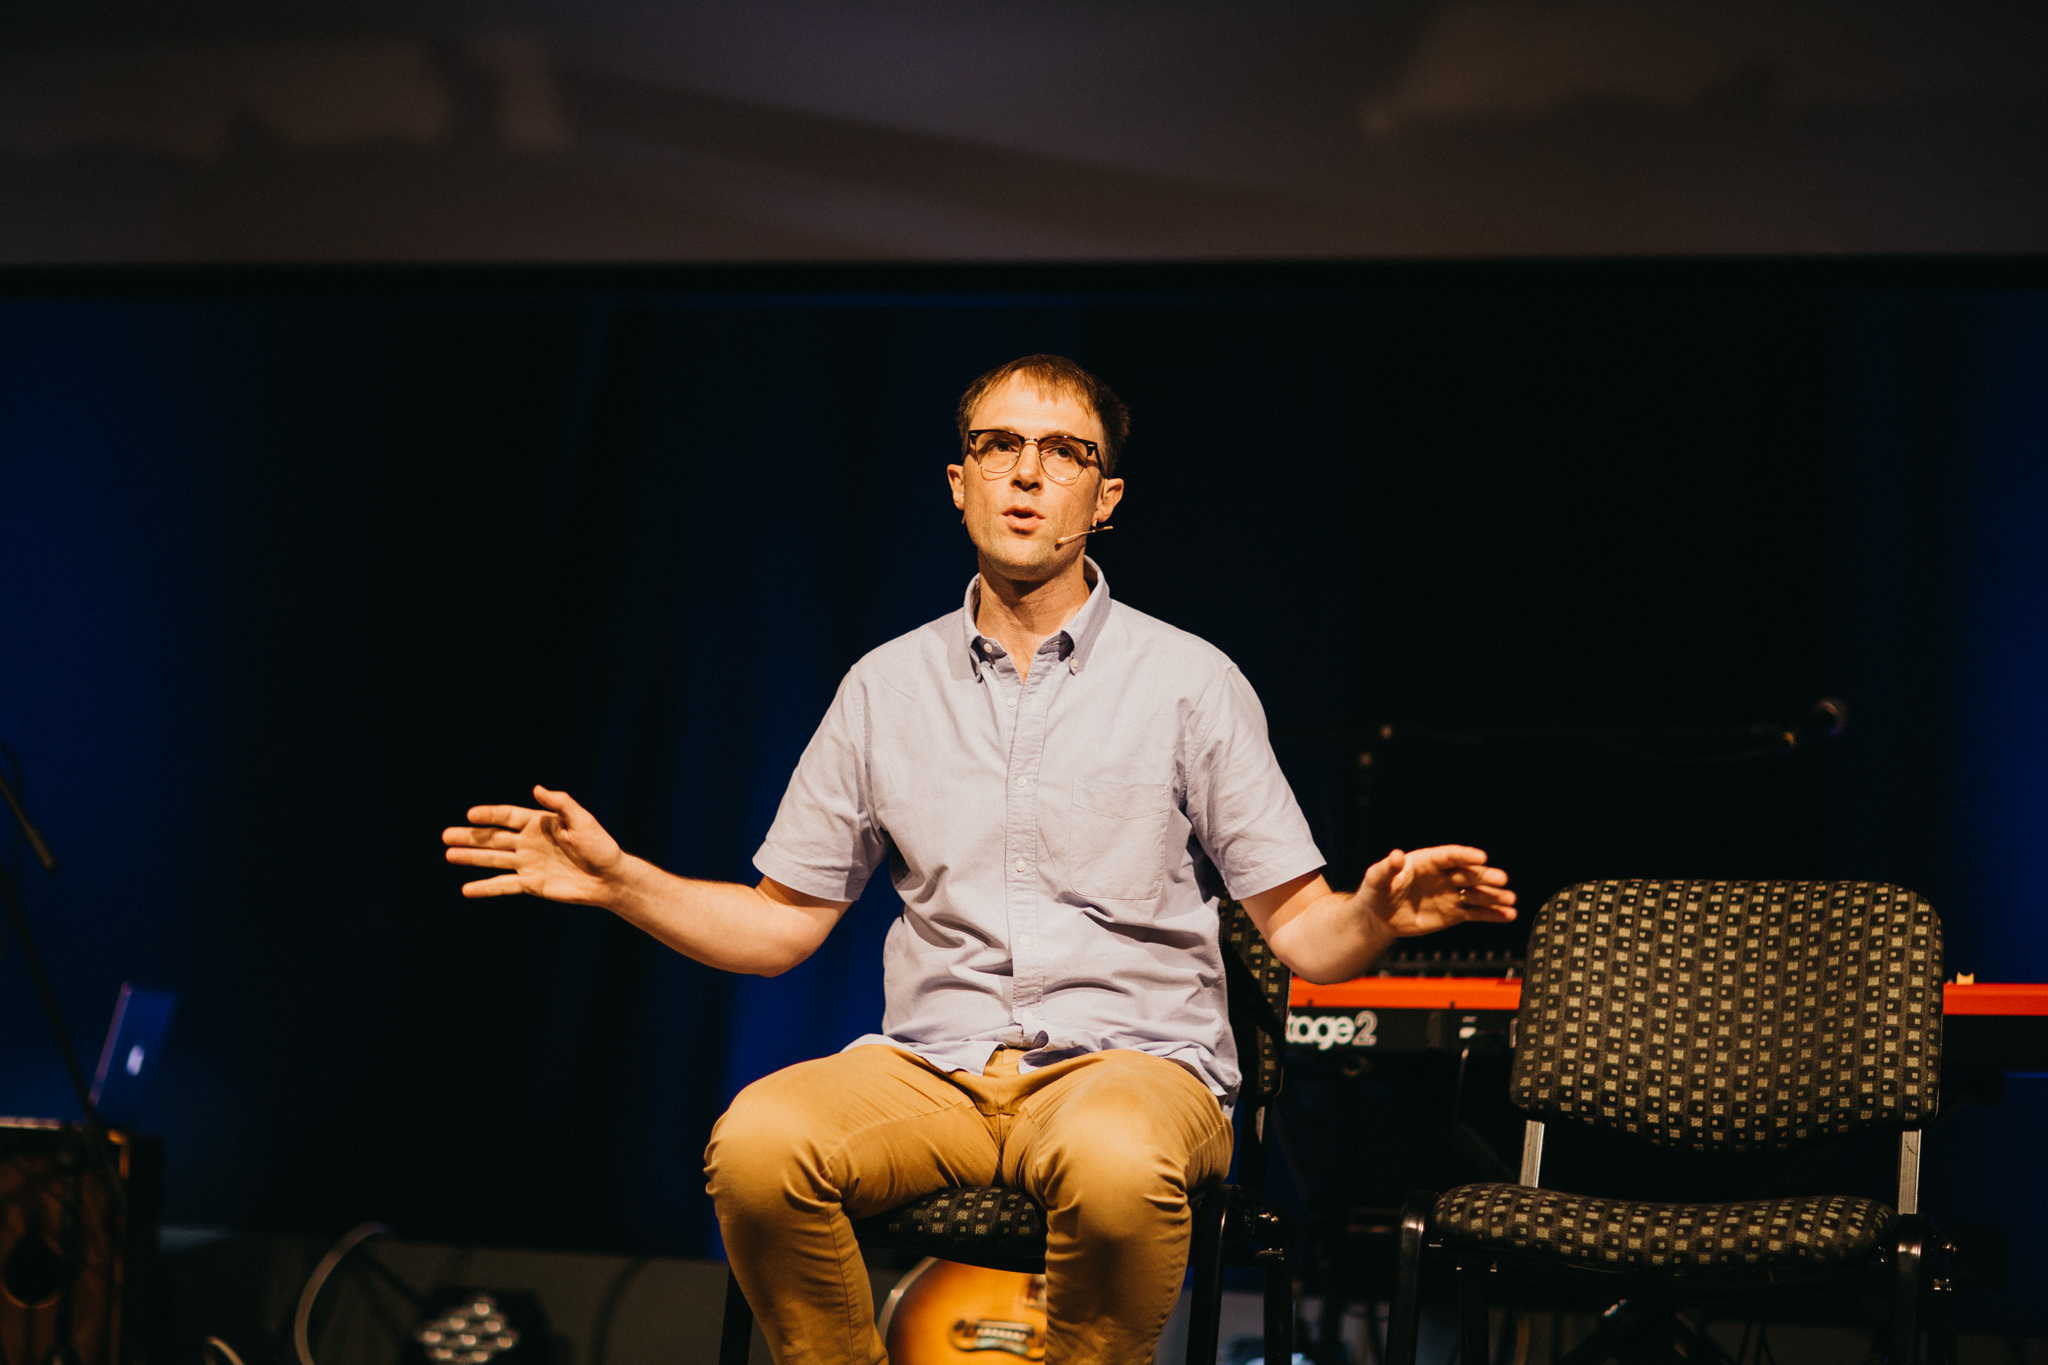 Session 2. Mark Sayers – Stand Firm | Mission from the Margins